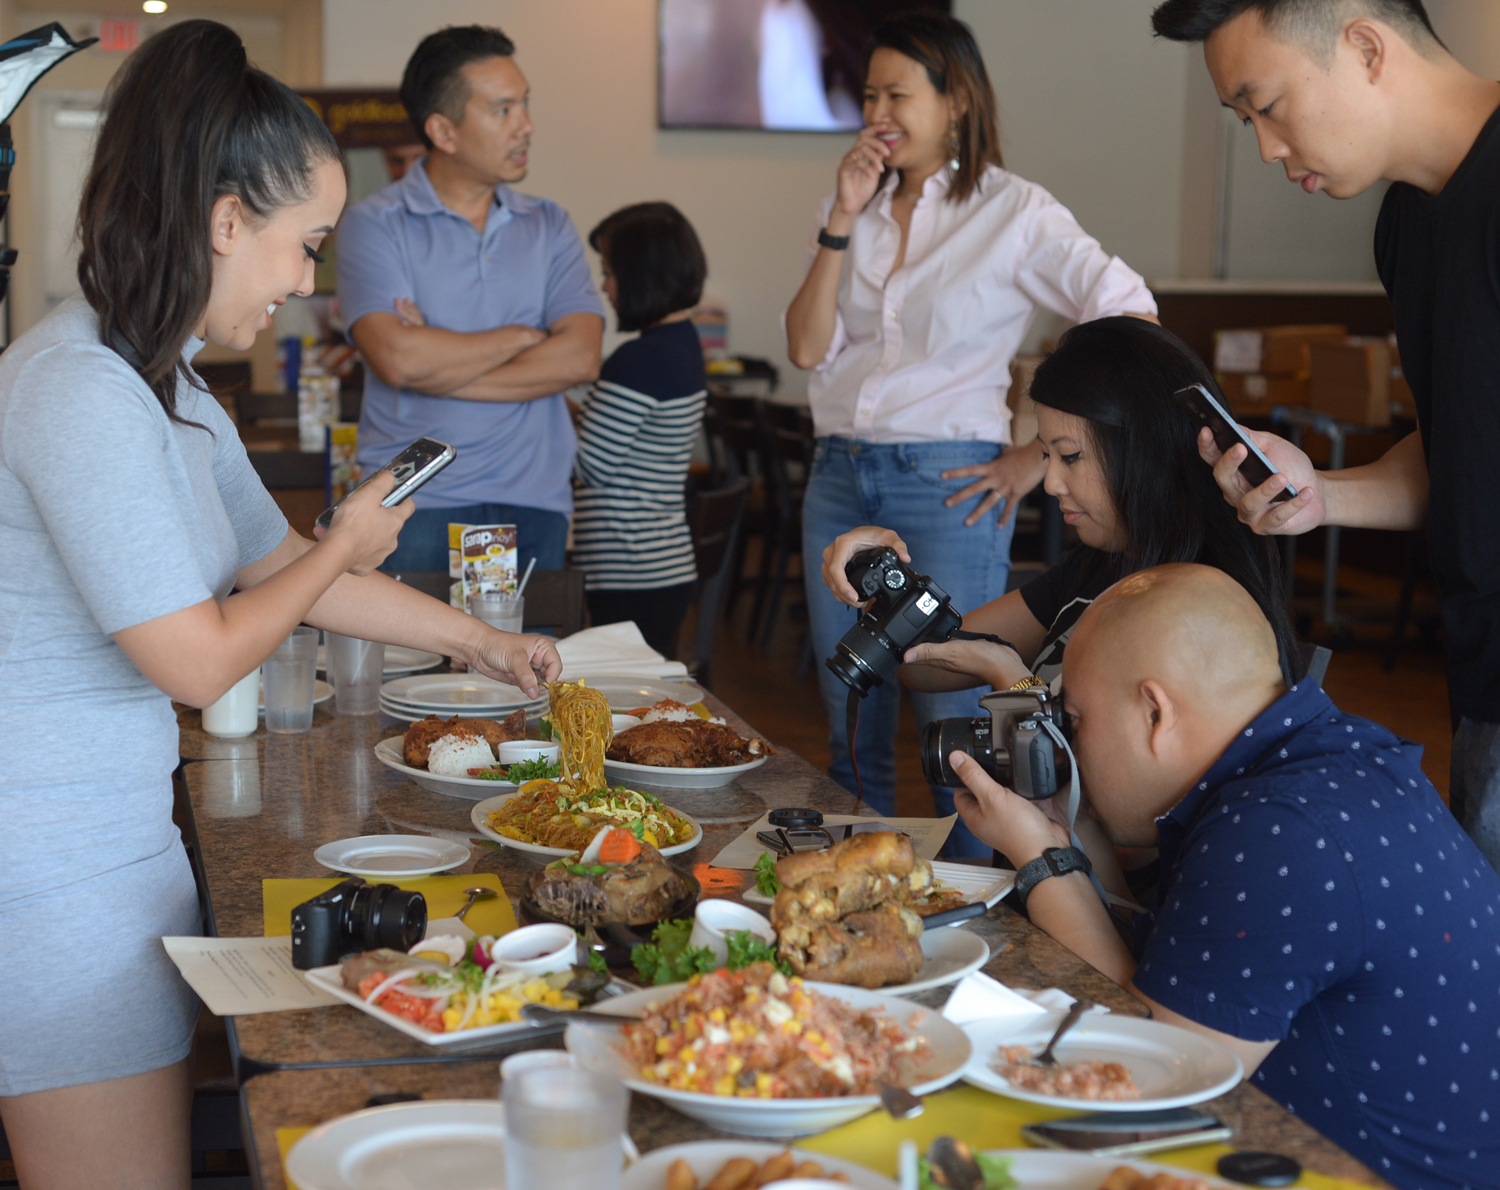 Varissa Brum (@misoo_hungry), Miralyne Ung (@omgitsbomb), Joey Ngoy (@jofieats) and Jeremy Lu (@socaleatery) take pictures of the lunch spread. (Photo by   Sunantha Mendoza-Quibilan)